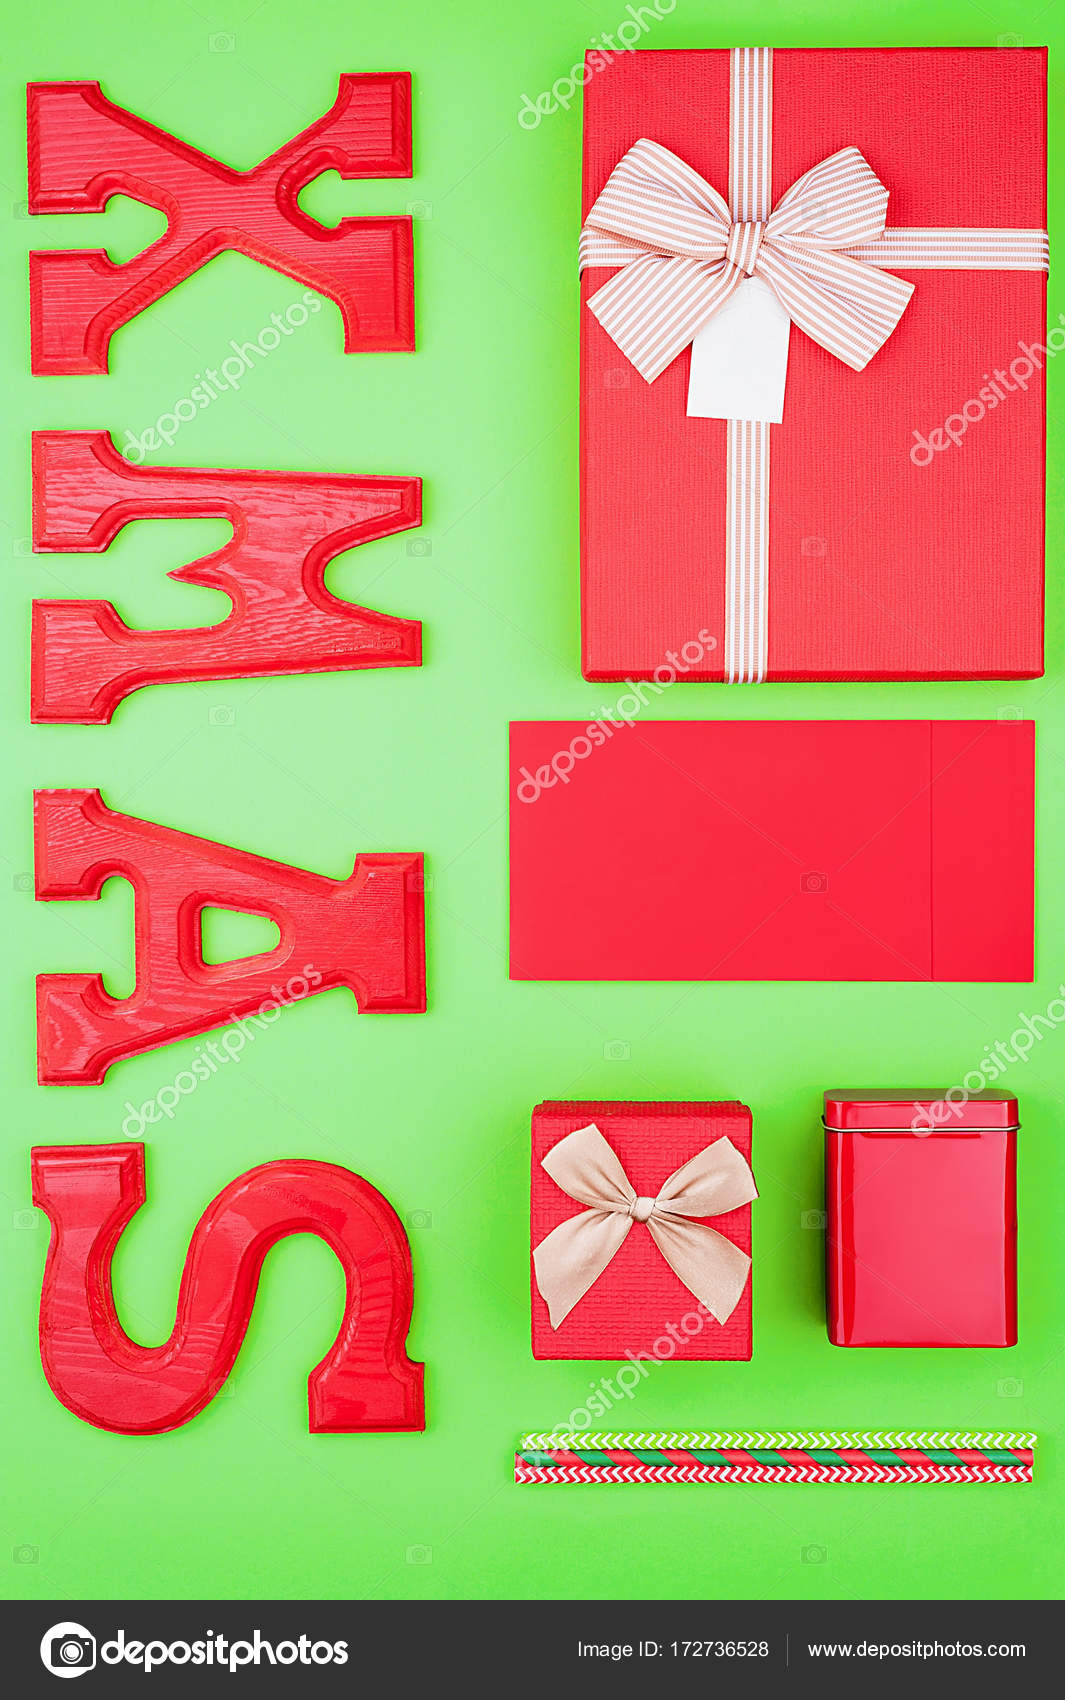 christmas festive mockup in red and green colors stock photo - Why Are Red And Green Christmas Colors